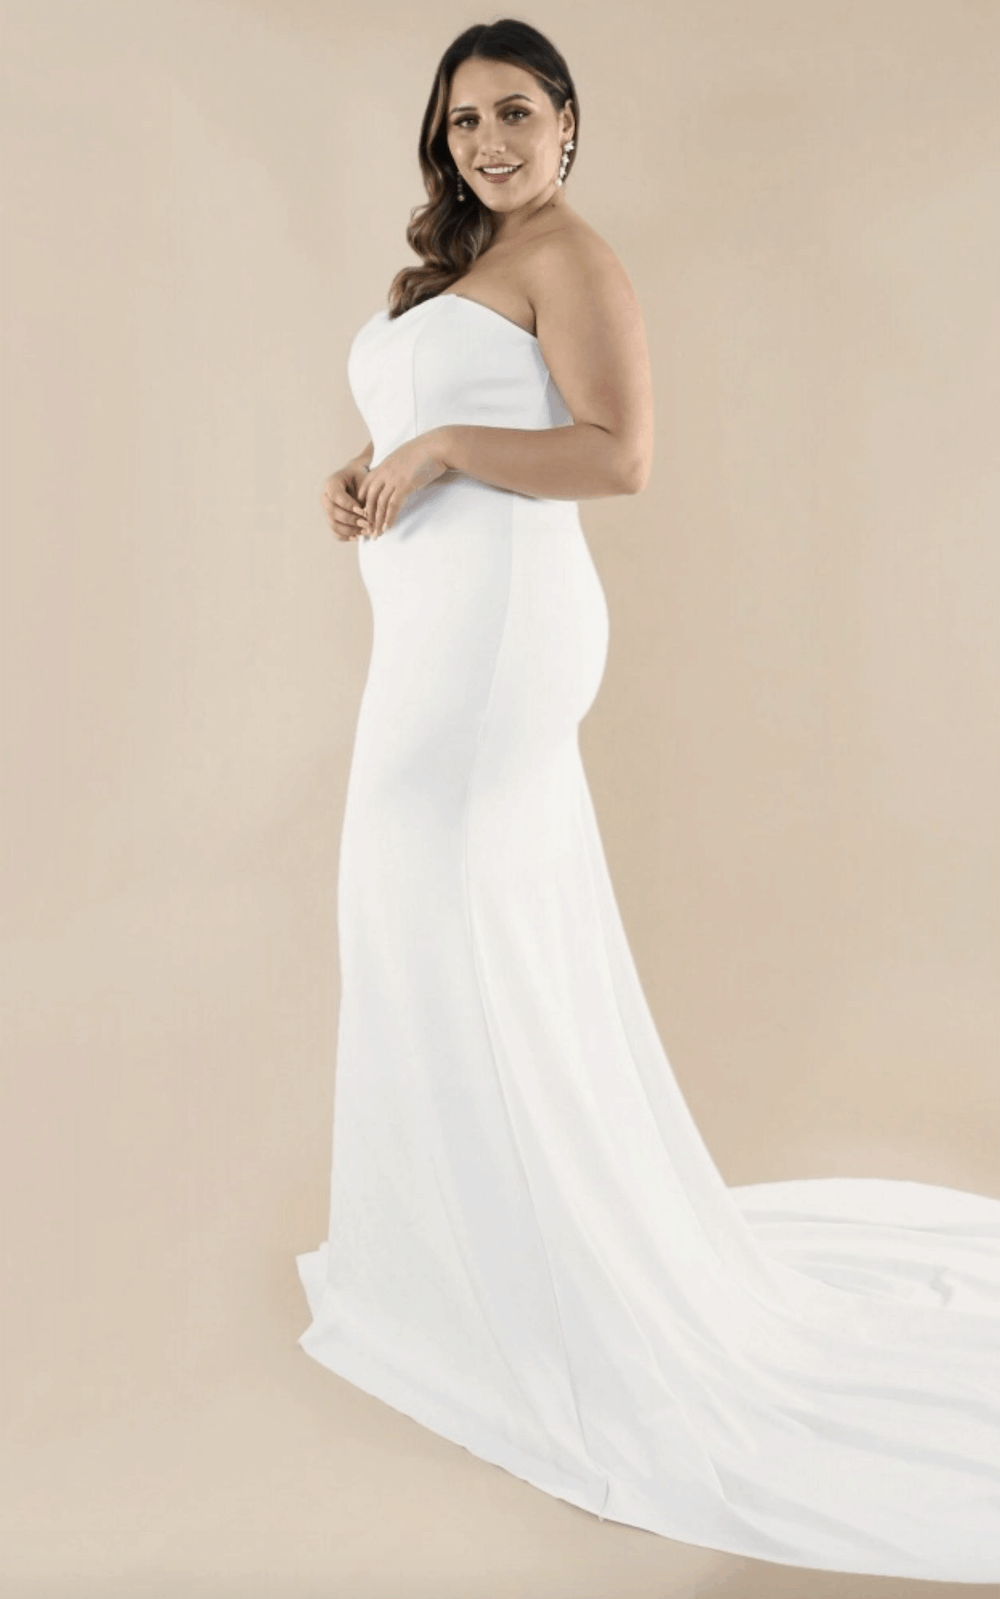 Plus Size Bridal Gowns and Wedding Dresses Perfect for Curvy Brides Sweetheart Strapless Train